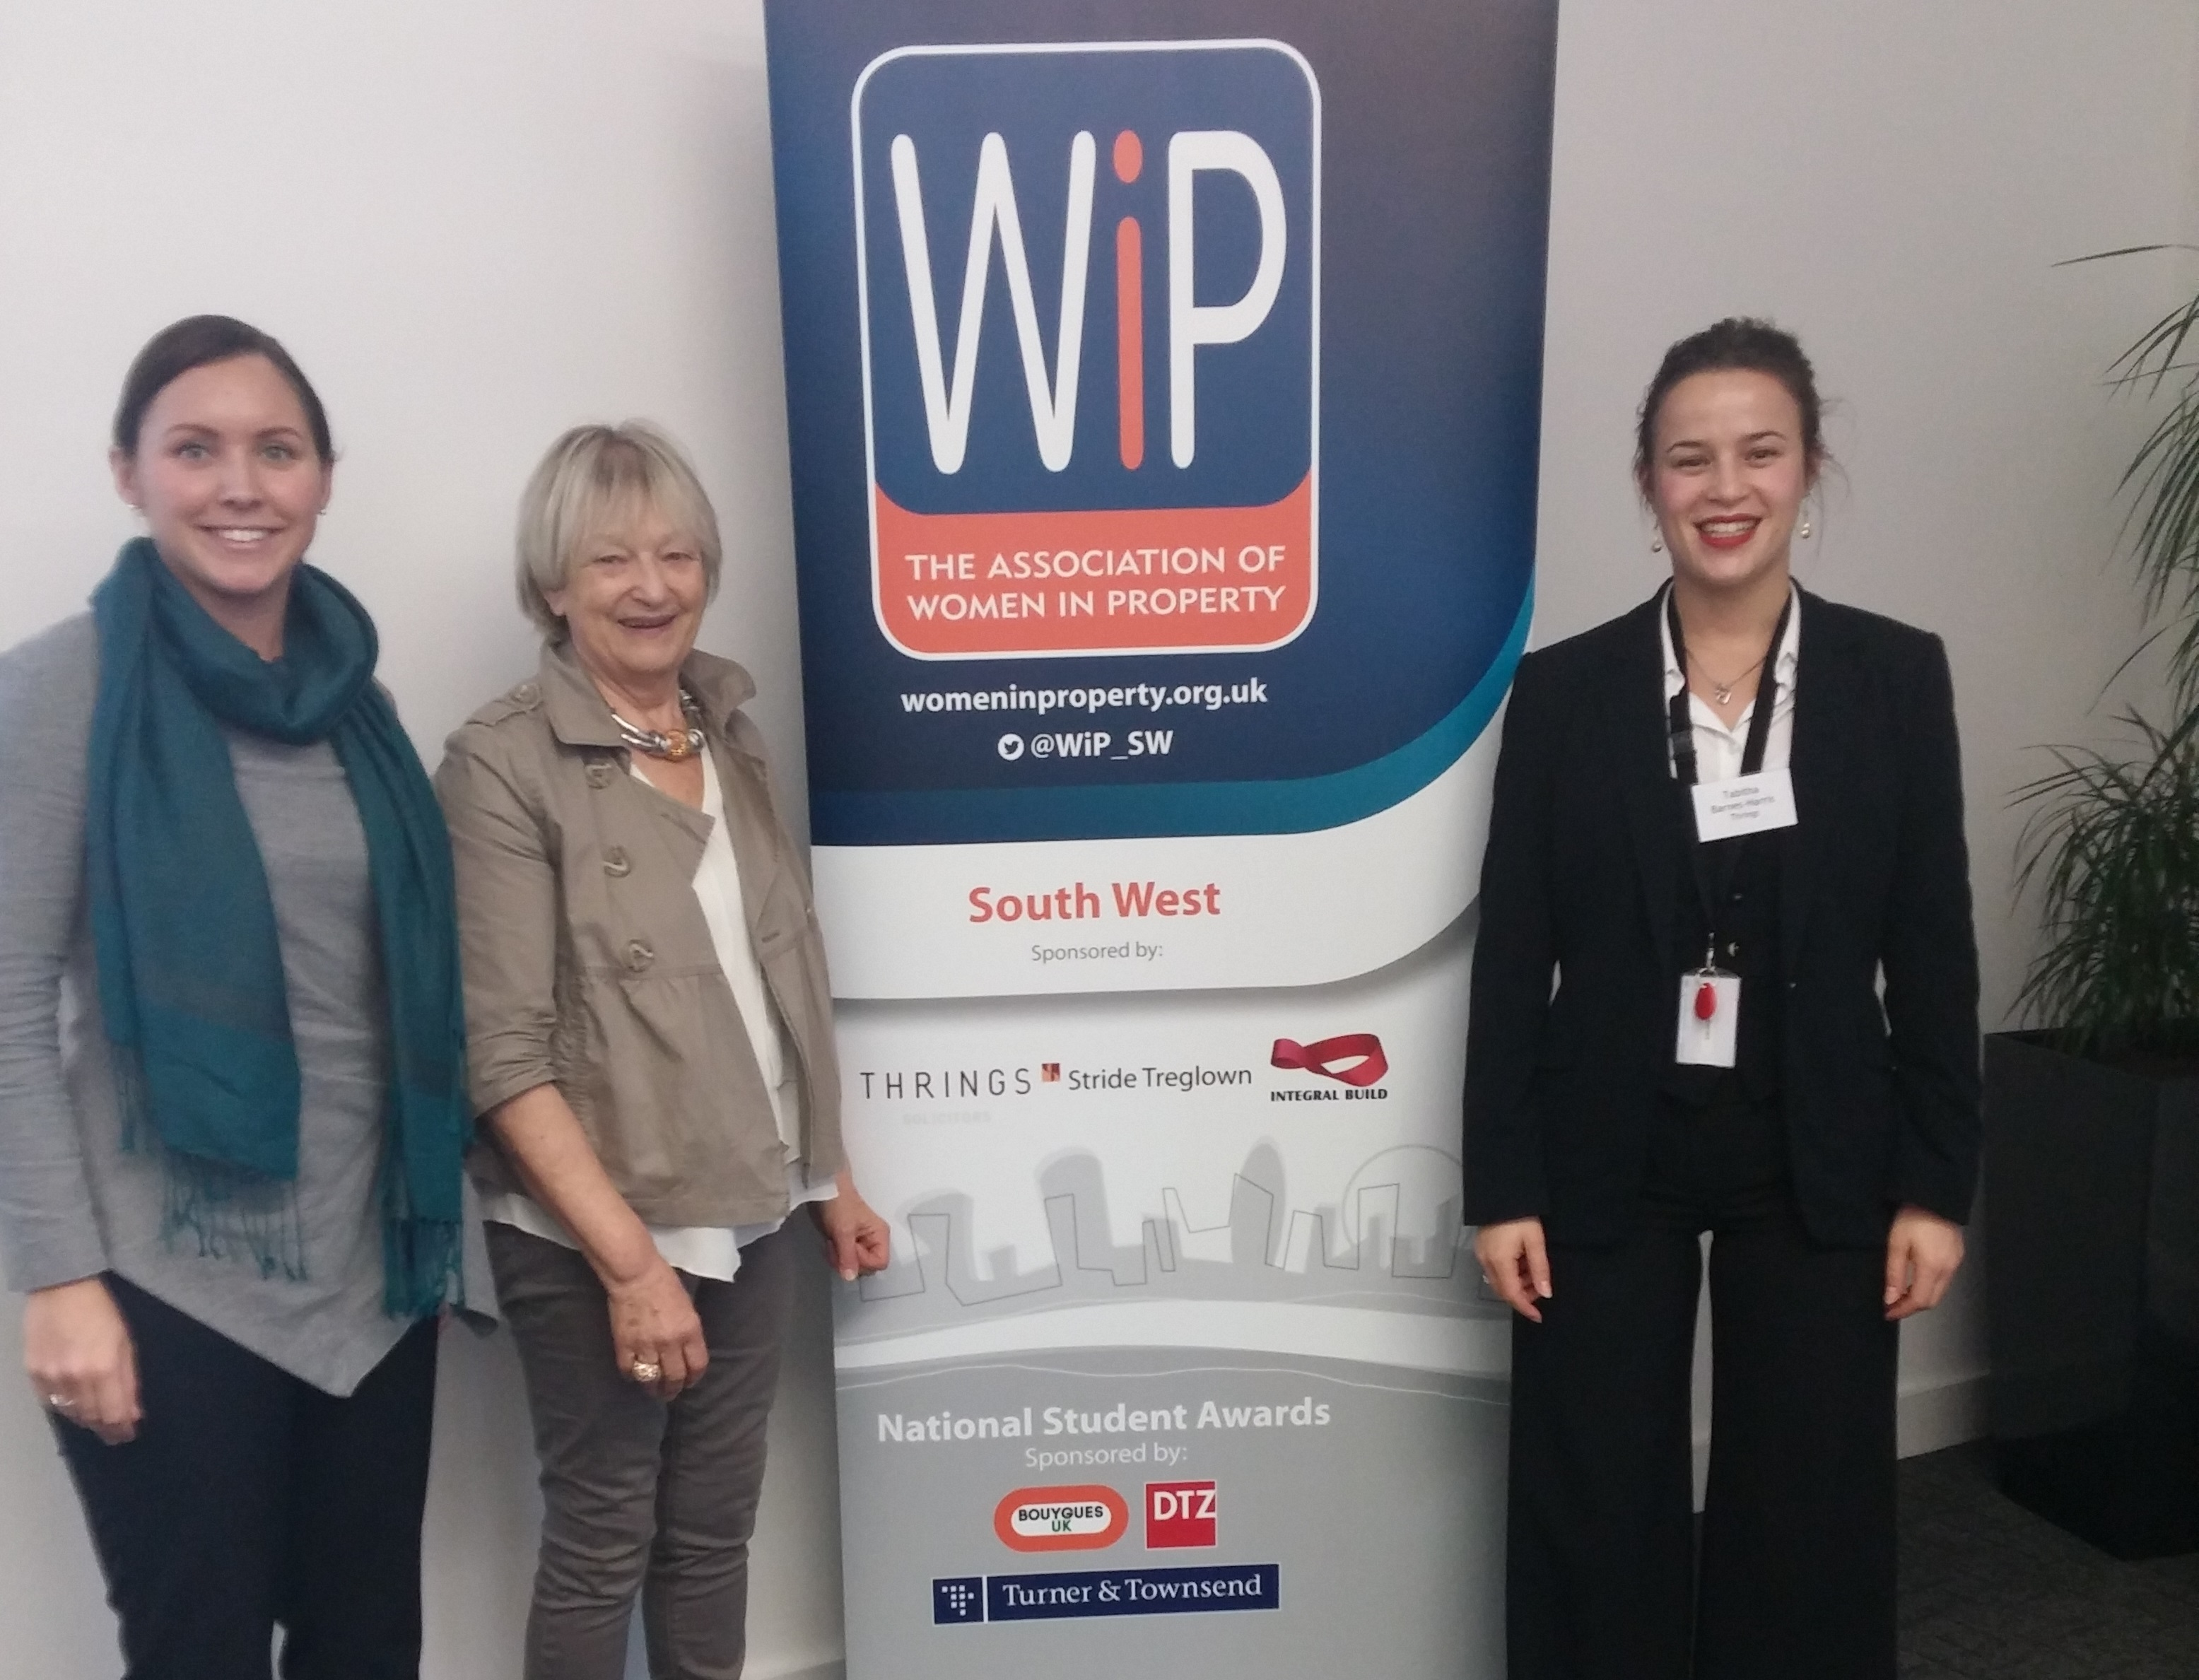 Halina Jaroszewska, Ros Trotman, Tabitha Barnes-Harris at WIP hosted by Thrings Bristol